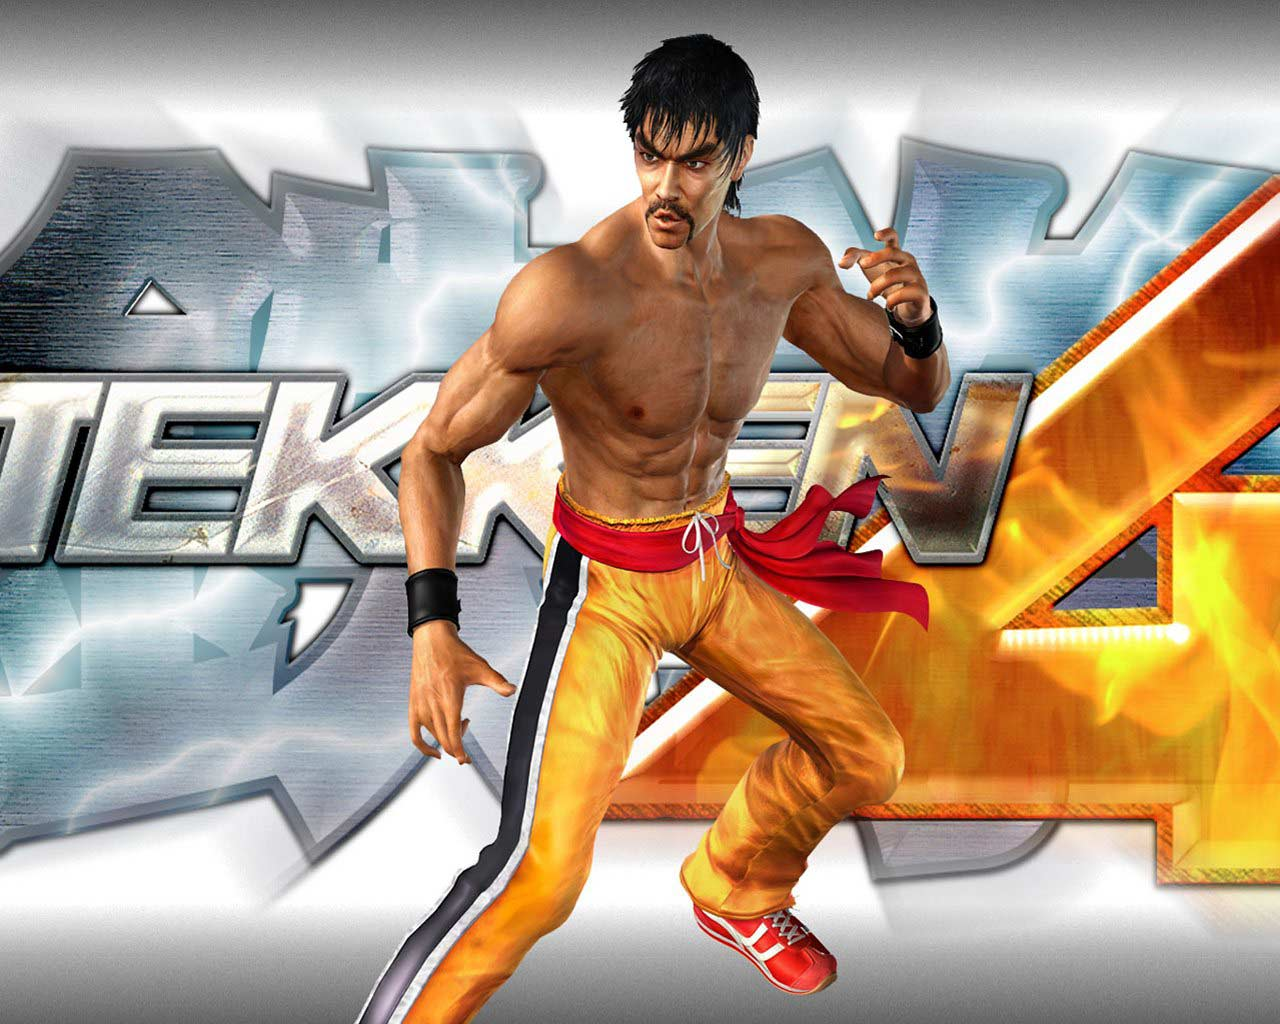 tekken 4 pc game (http://www.freedownloadfullversiongame.com)